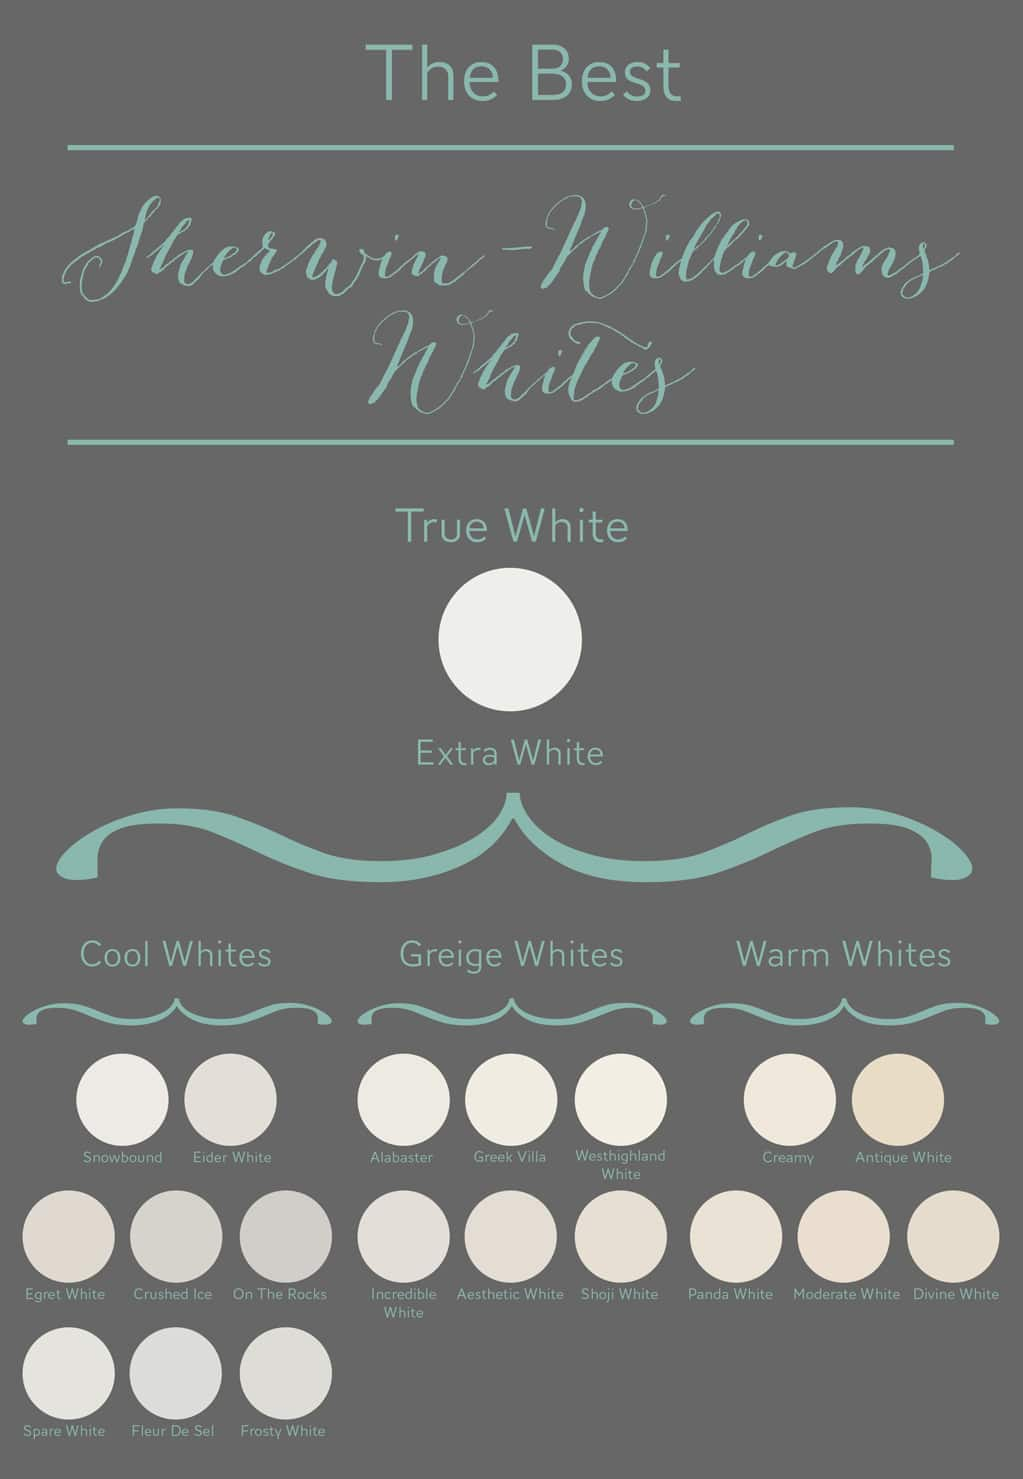 The Best Sherwin-Williams Whites